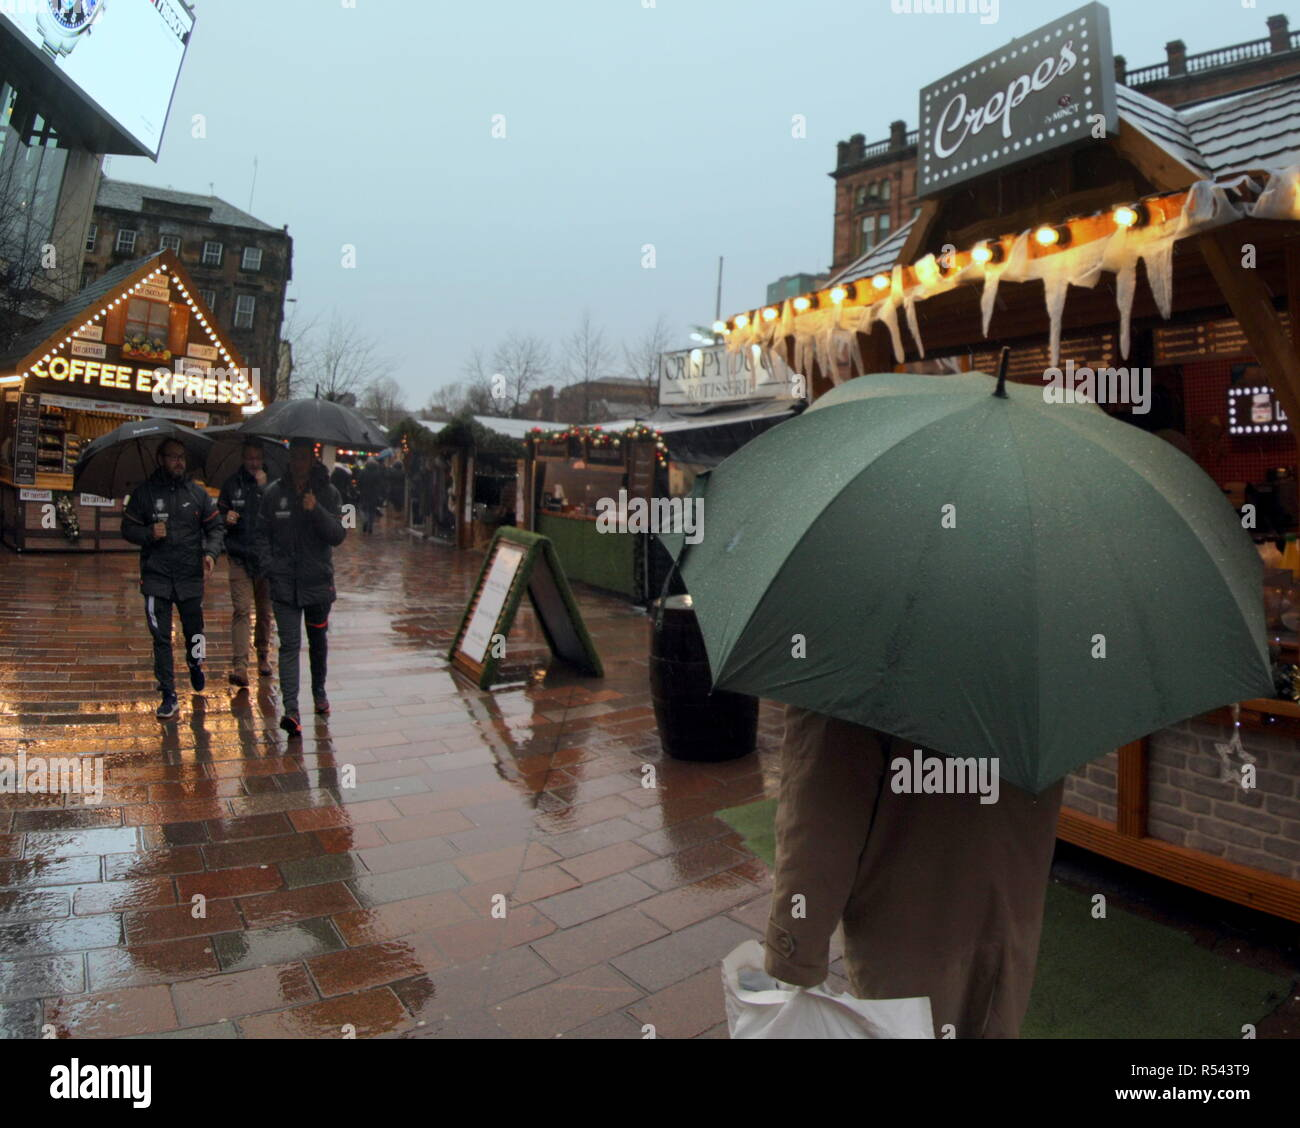 Glasgow, Scotland, UK. 29th Nov, 2018. UK Weather.Storm Diana weather warnings continue as the city gets very wet with heavy rain and locals are on the streets. Credit: gerard ferry/Alamy Live News Stock Photo